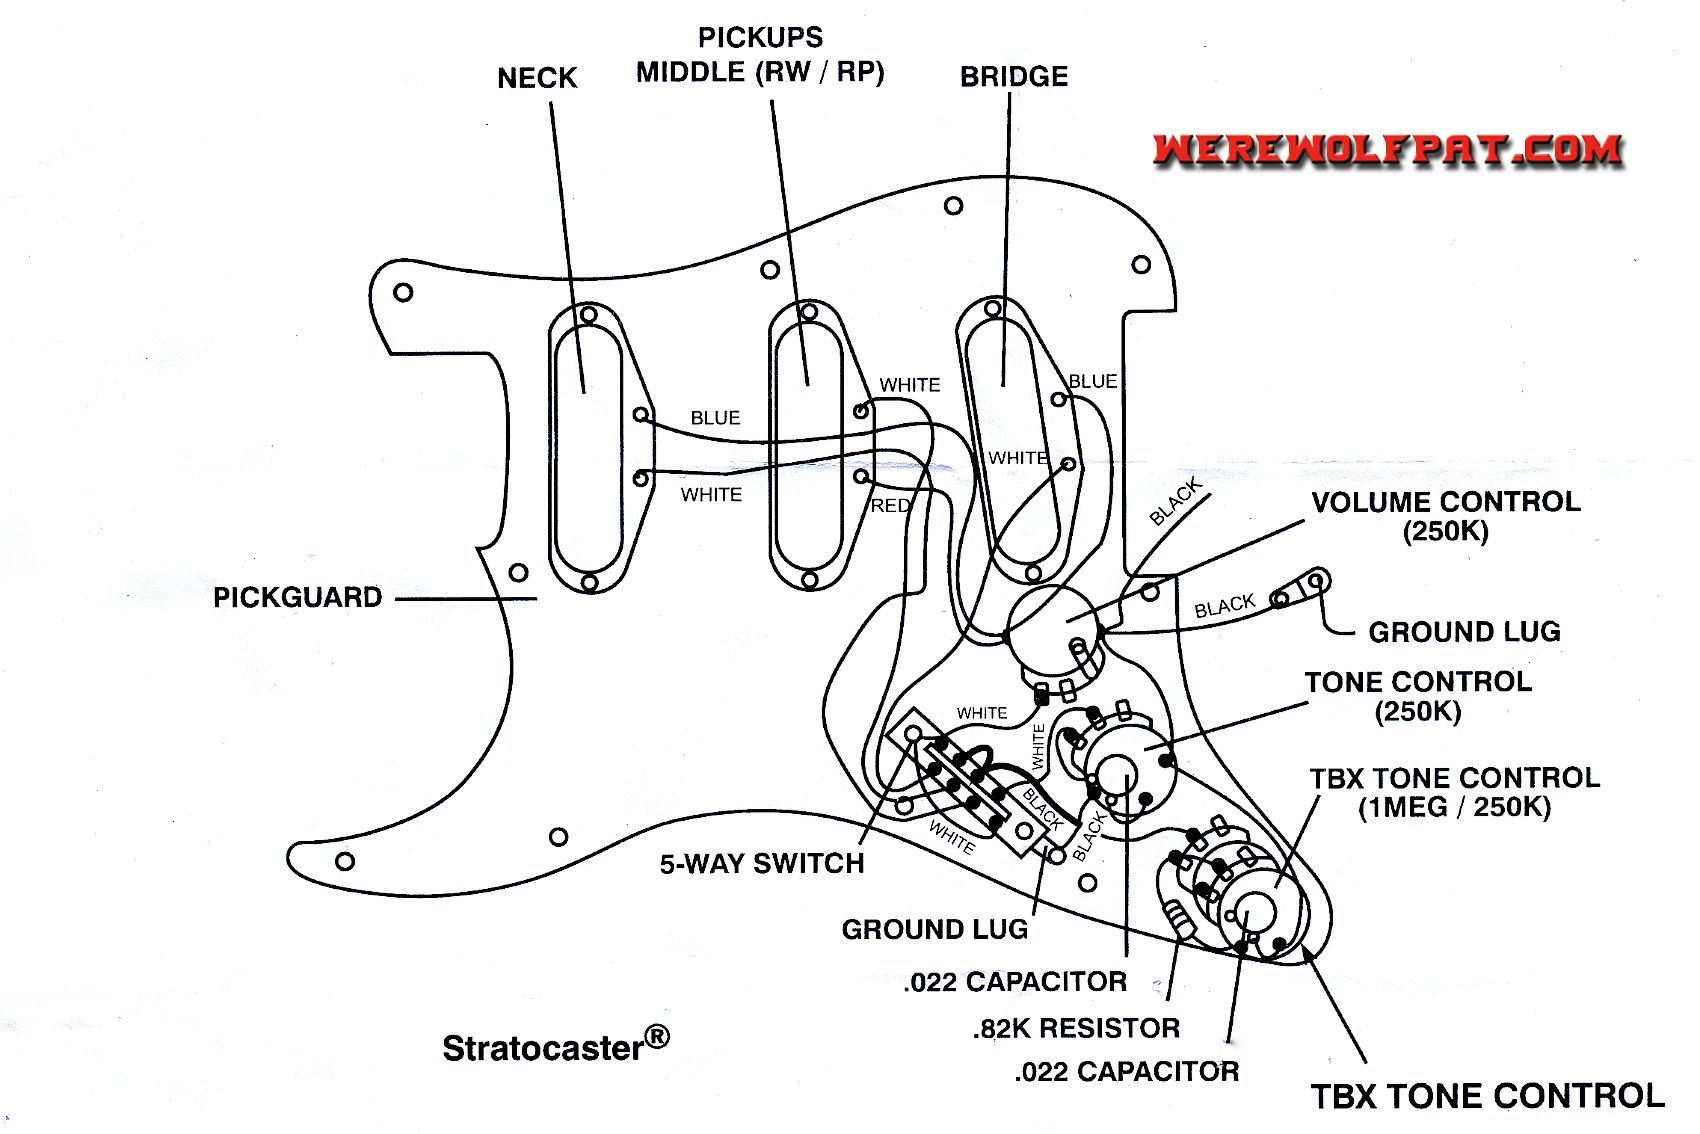 wiring diagrams telecaster electric guitar wiring discover your 17 best images about guitar schematic electric